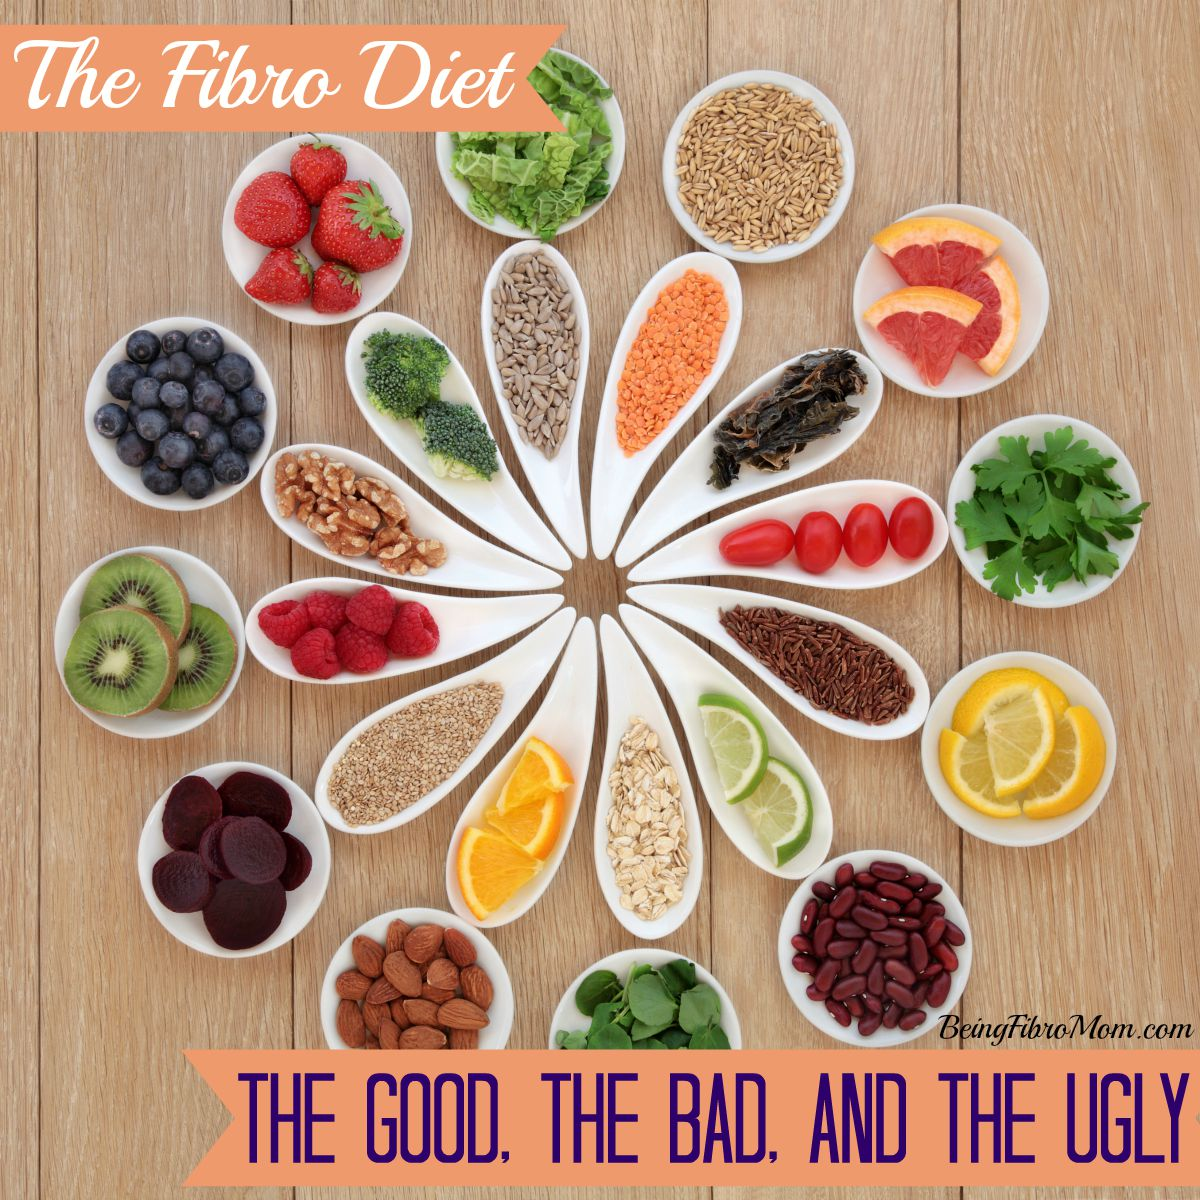 The fibro diet - the good, the bad, and the ugly #fibromyalgia #fibrodiet #chronicillness